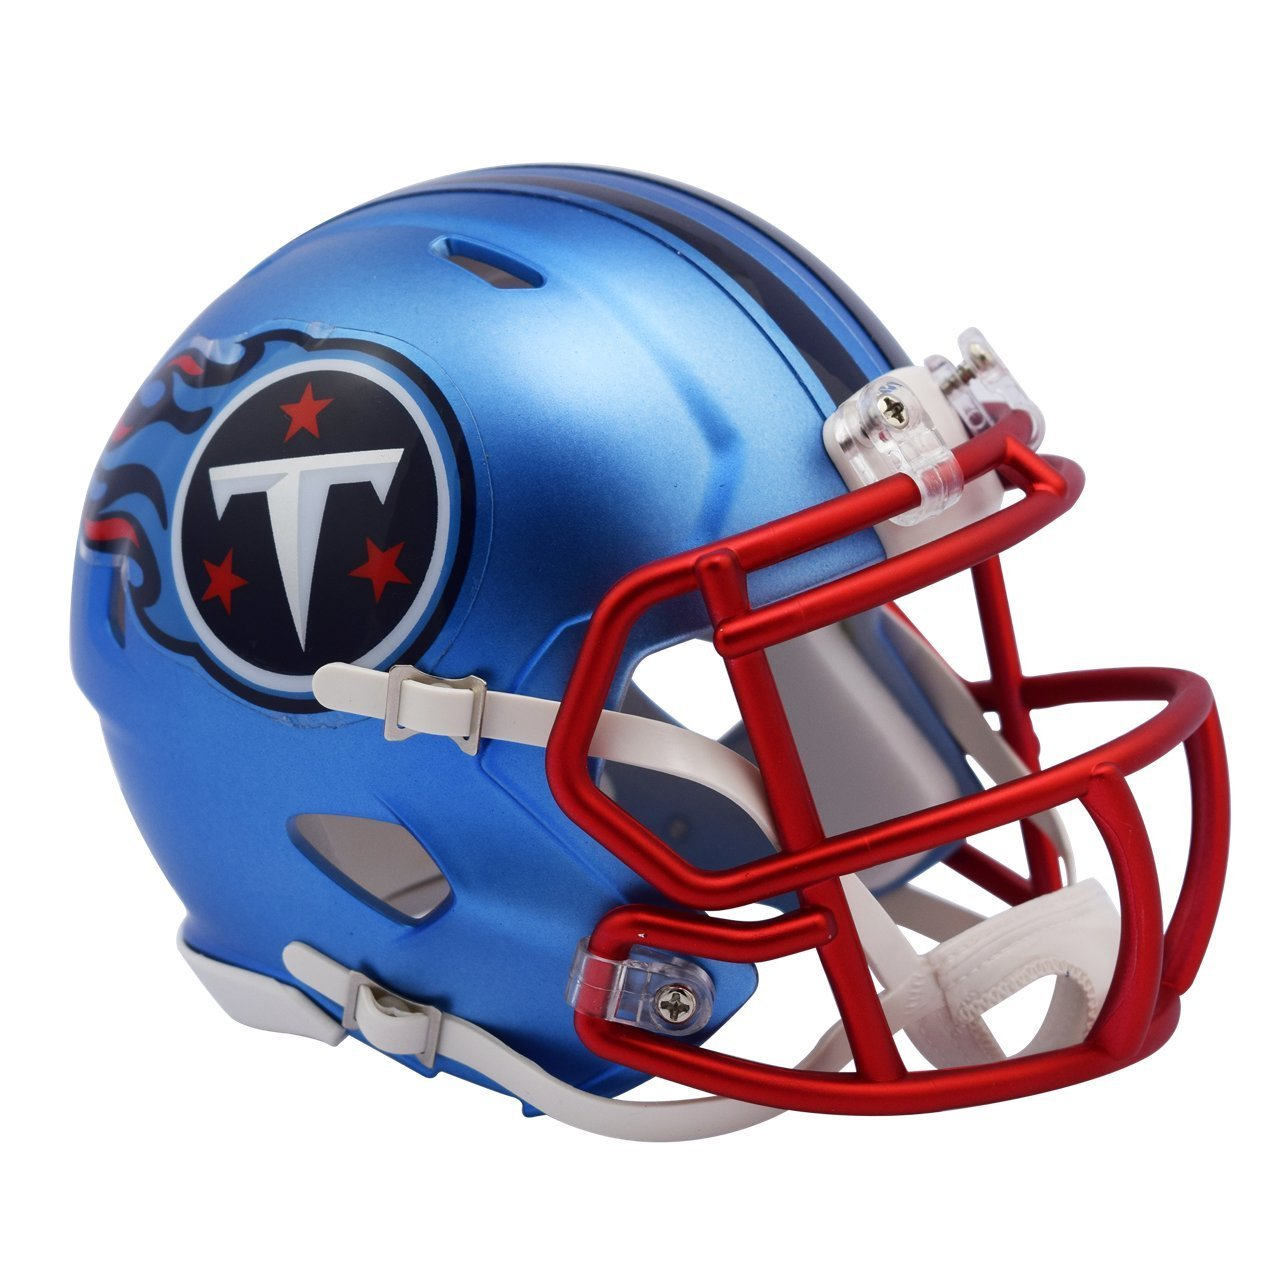 Cheap Blue Football Helmets | Free download best Blue Football Helmets on  for sale